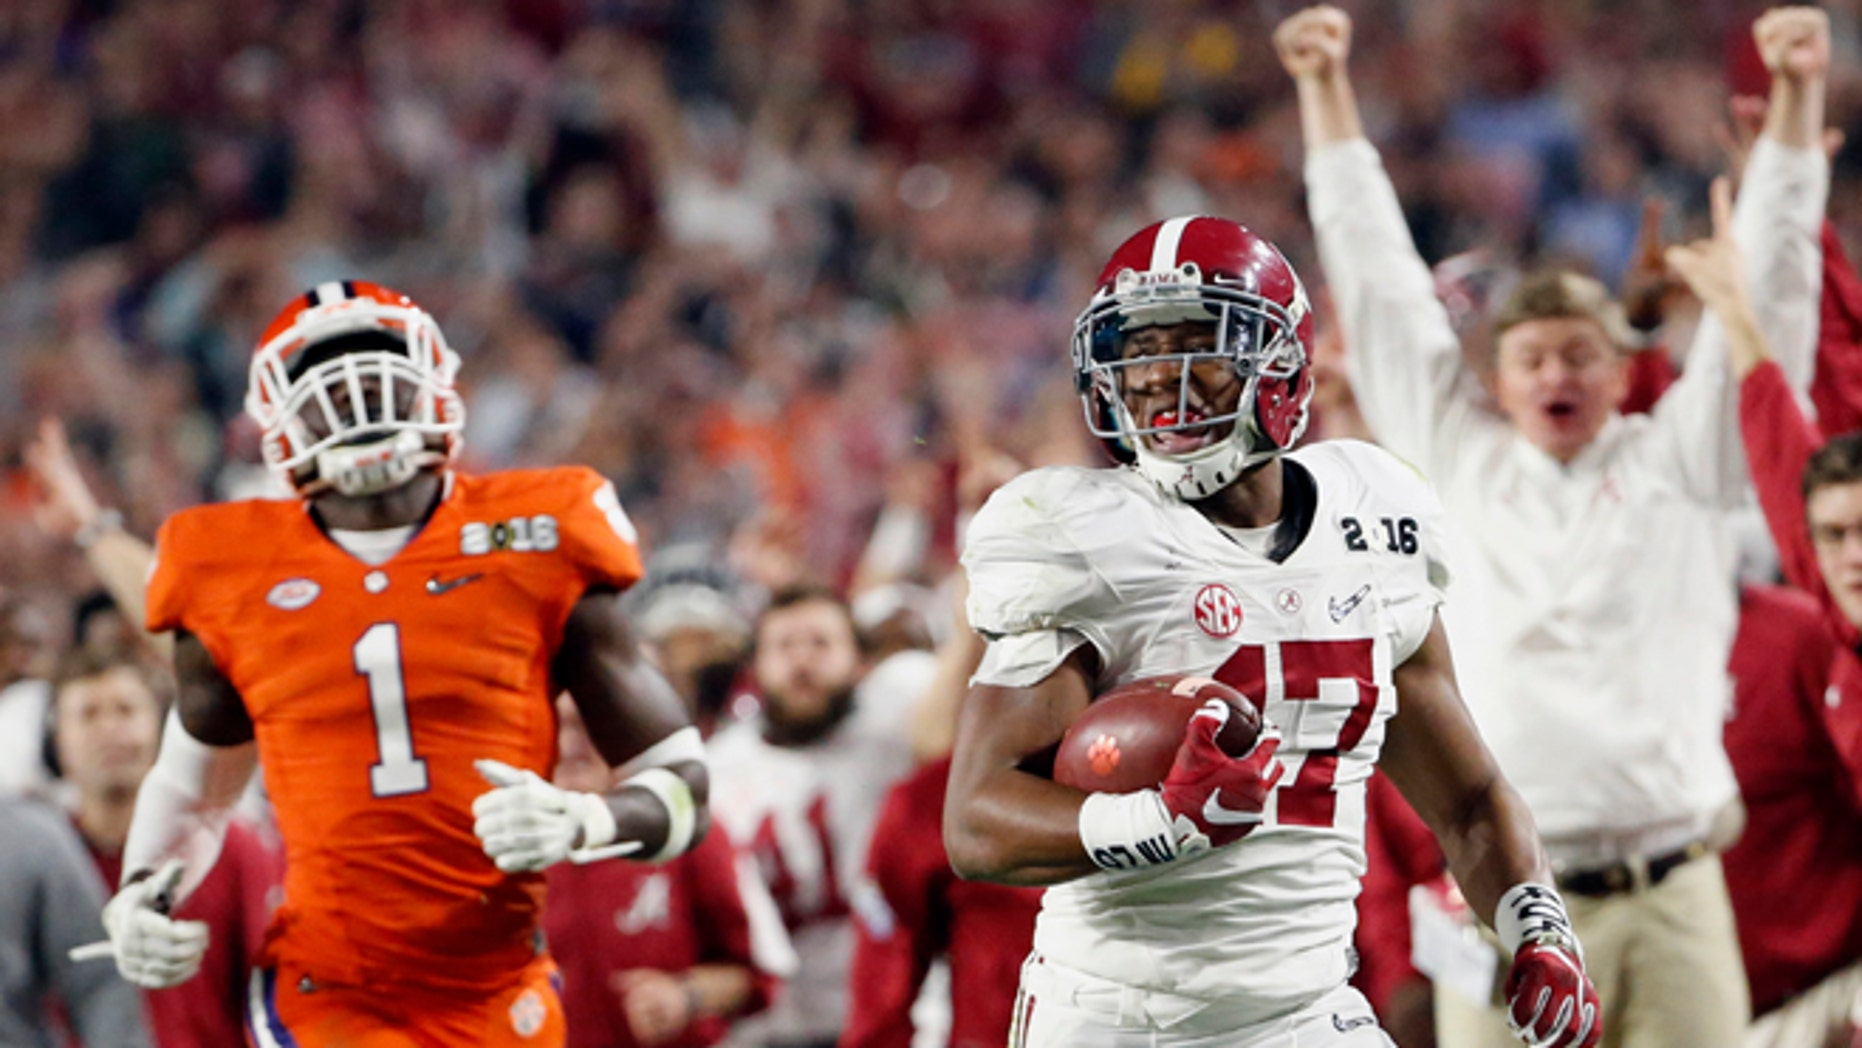 Alabama's Kenyan Drake, right, breaks away for a touchdown return against Clemson's Jayron Kearse (1) during the second half of the NCAA college football playoff championship game Monday, Jan. 11, 2016, in Glendale, Ariz. (Michael Chow/The Arizona Republic via AP) MARICOPA COUNTY OUT; MAGS OUT; NO SALES; MANDATORY CREDIT